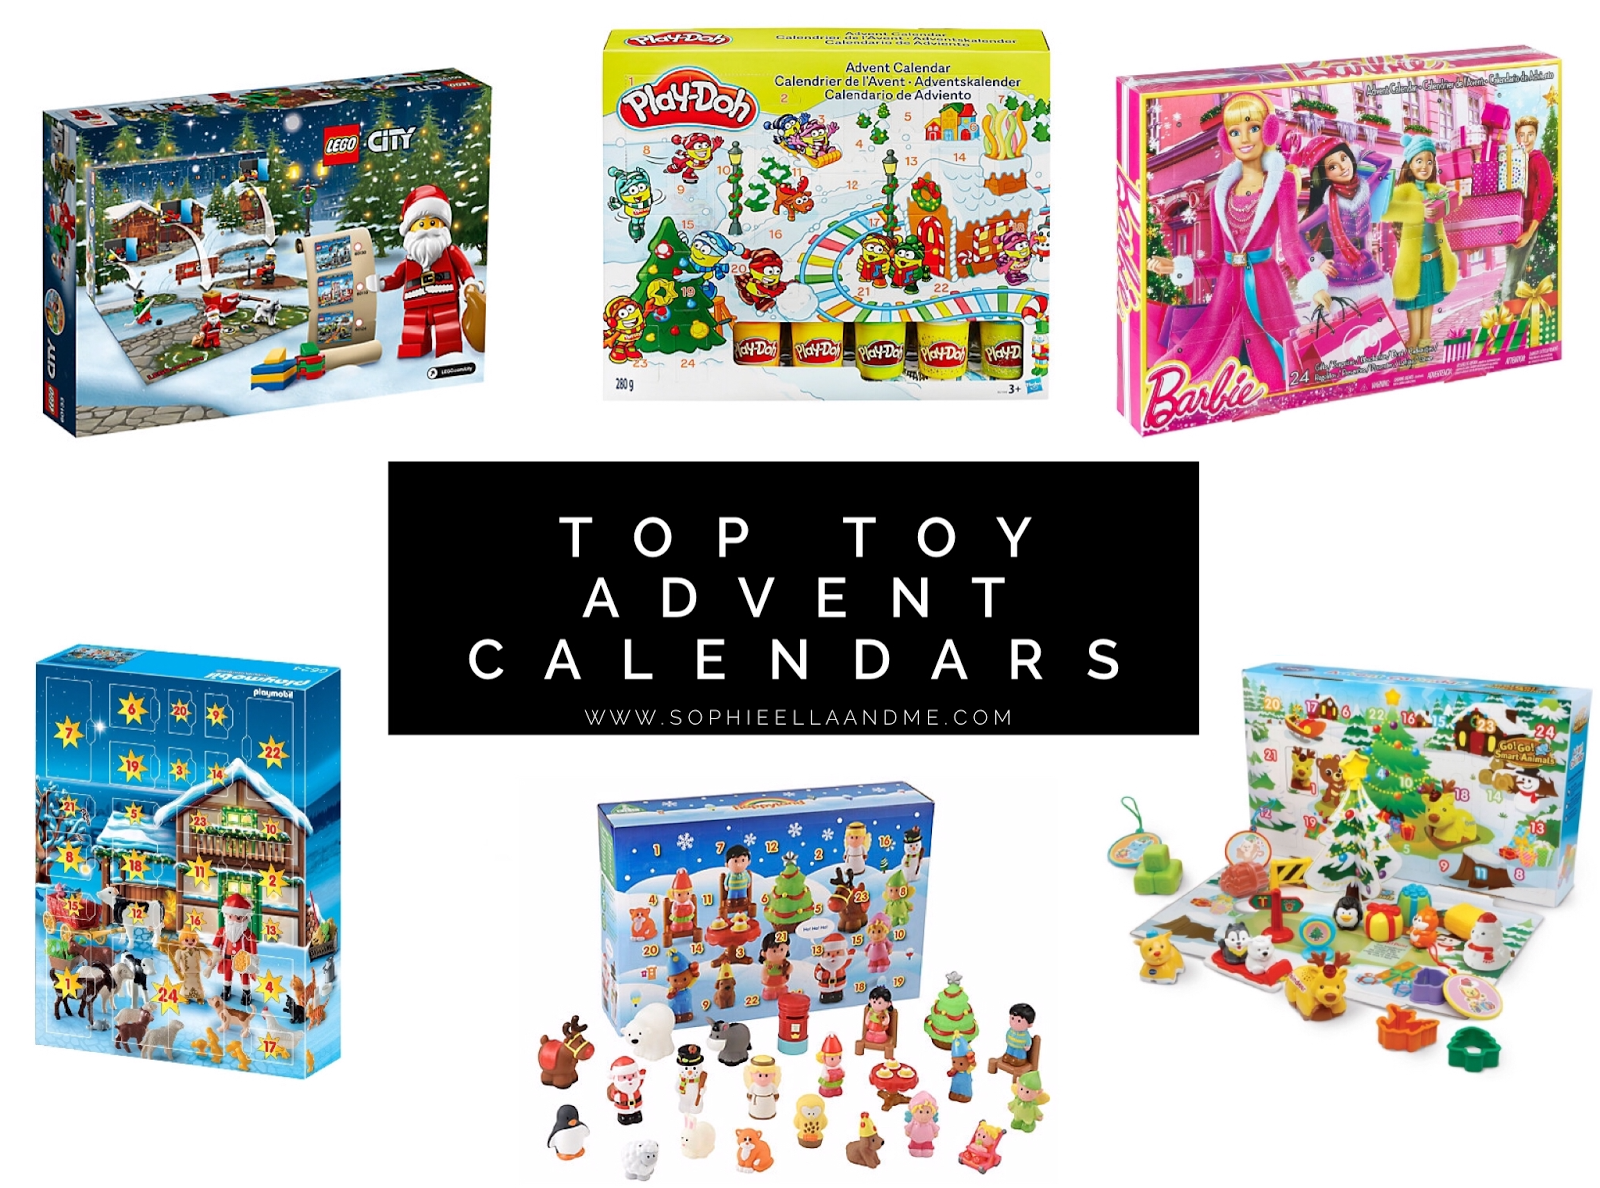 Kids Toy Advent Calendar : Top toy advent calendars for children sophie ella and me